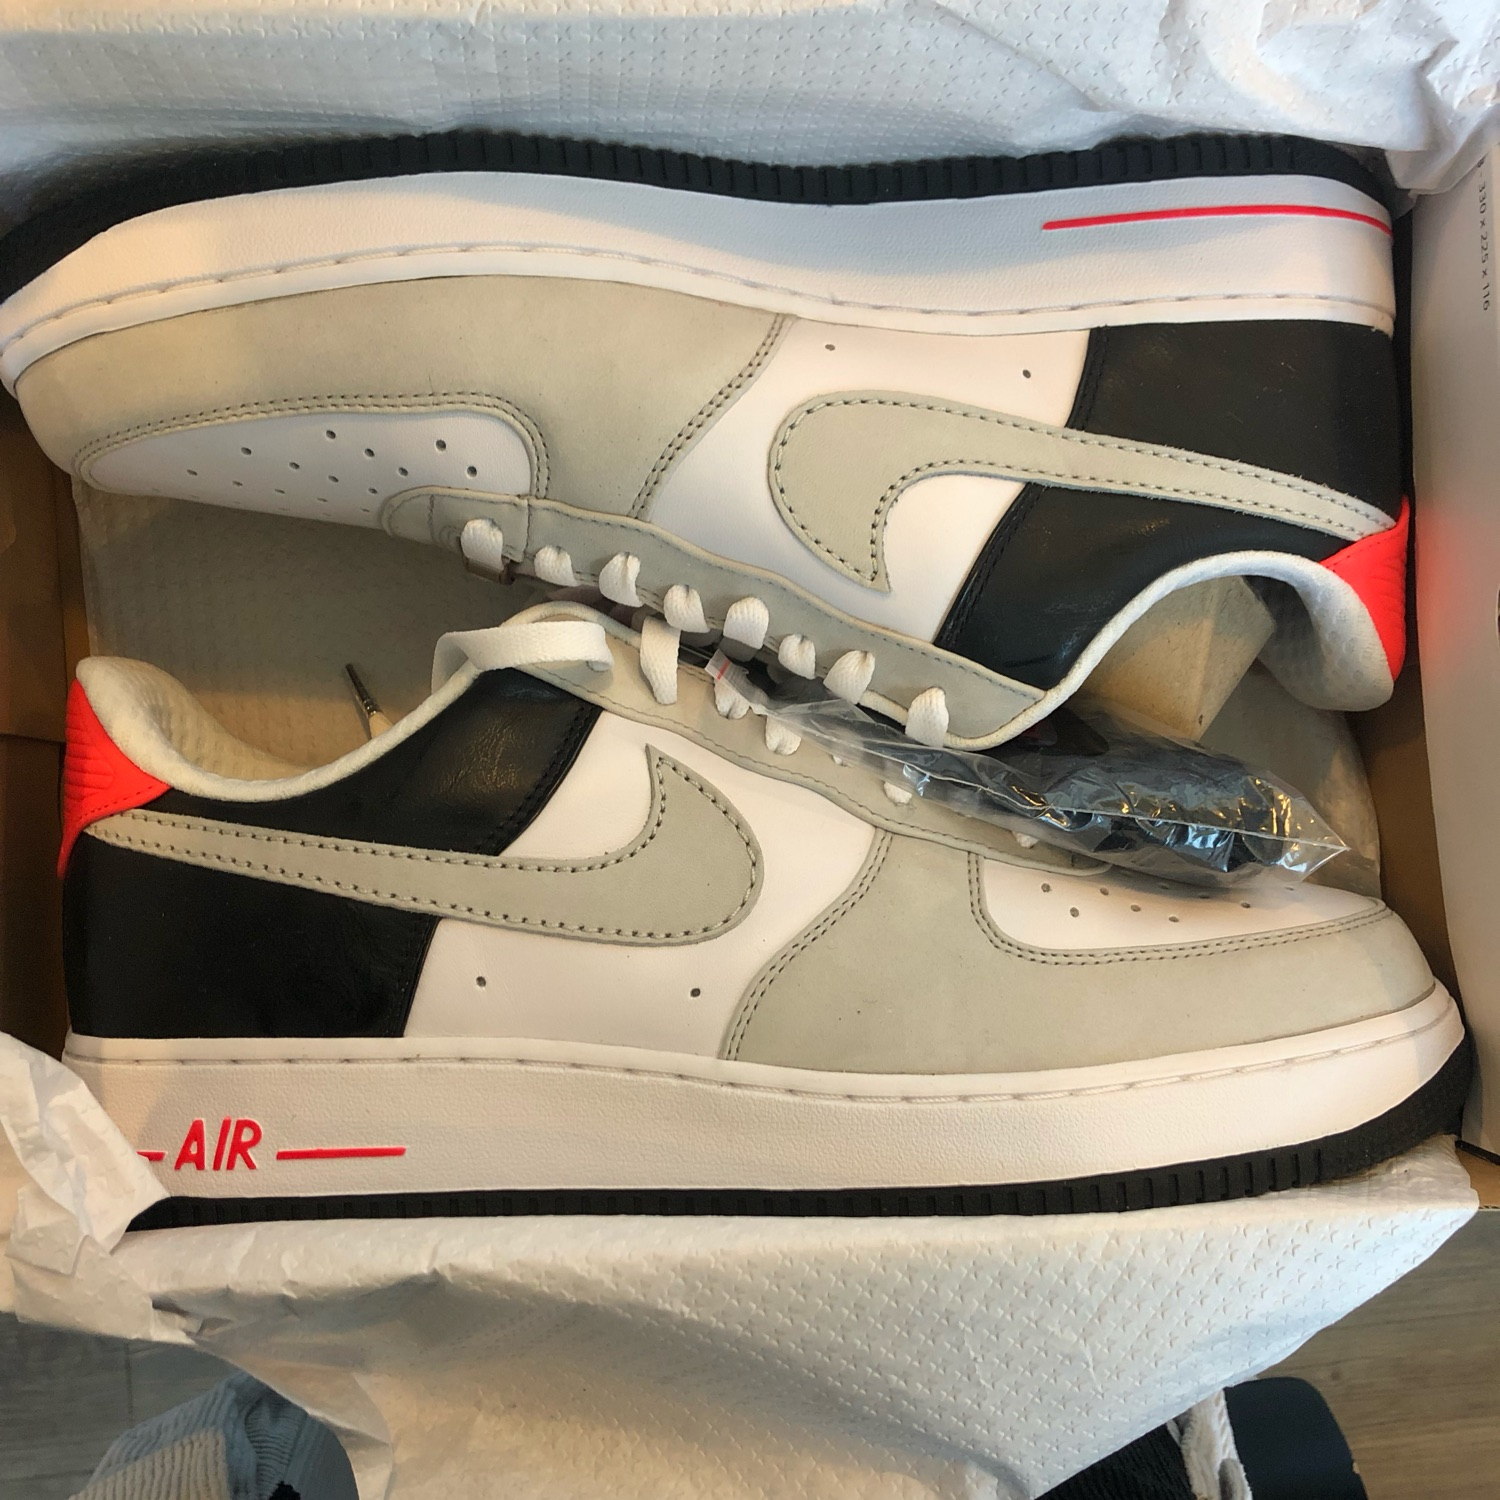 Air Force 1 Low Premium Infrared Size 11.5